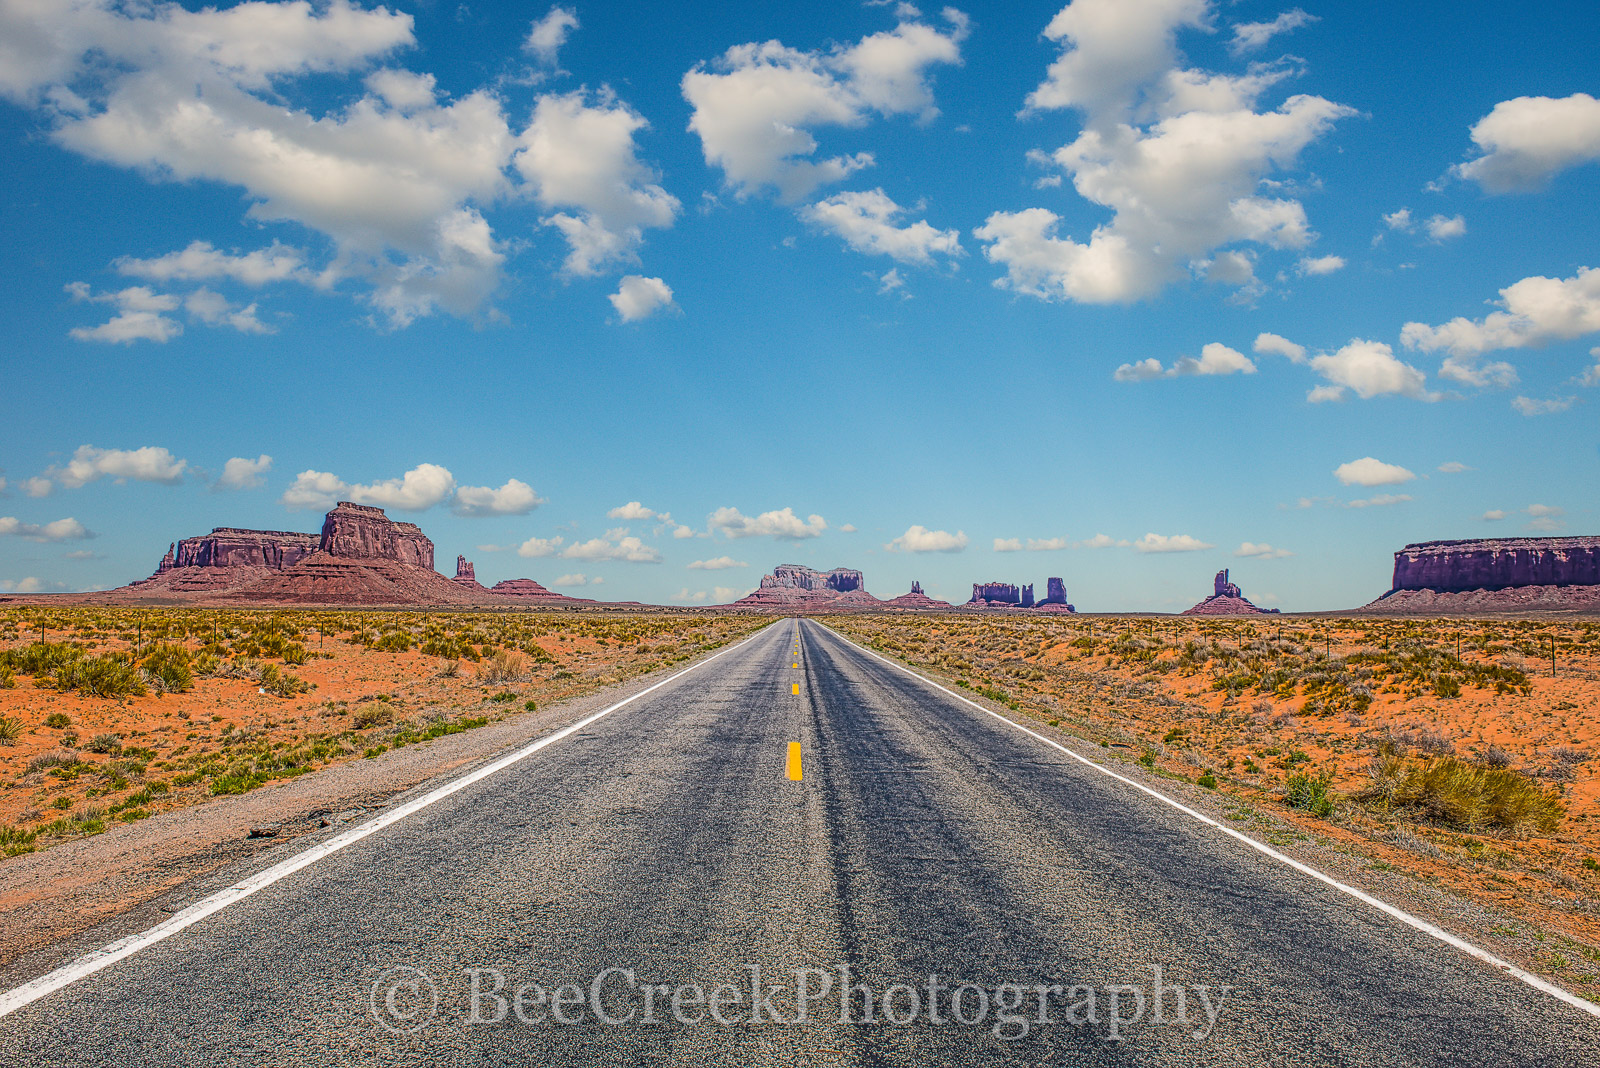 Arizona, Monument Valley AZ, desert, entering monument valley, erosion, geolgic, geology, landscape, landscapes, navajo indians, red rocks, sandstone, southwest, photo